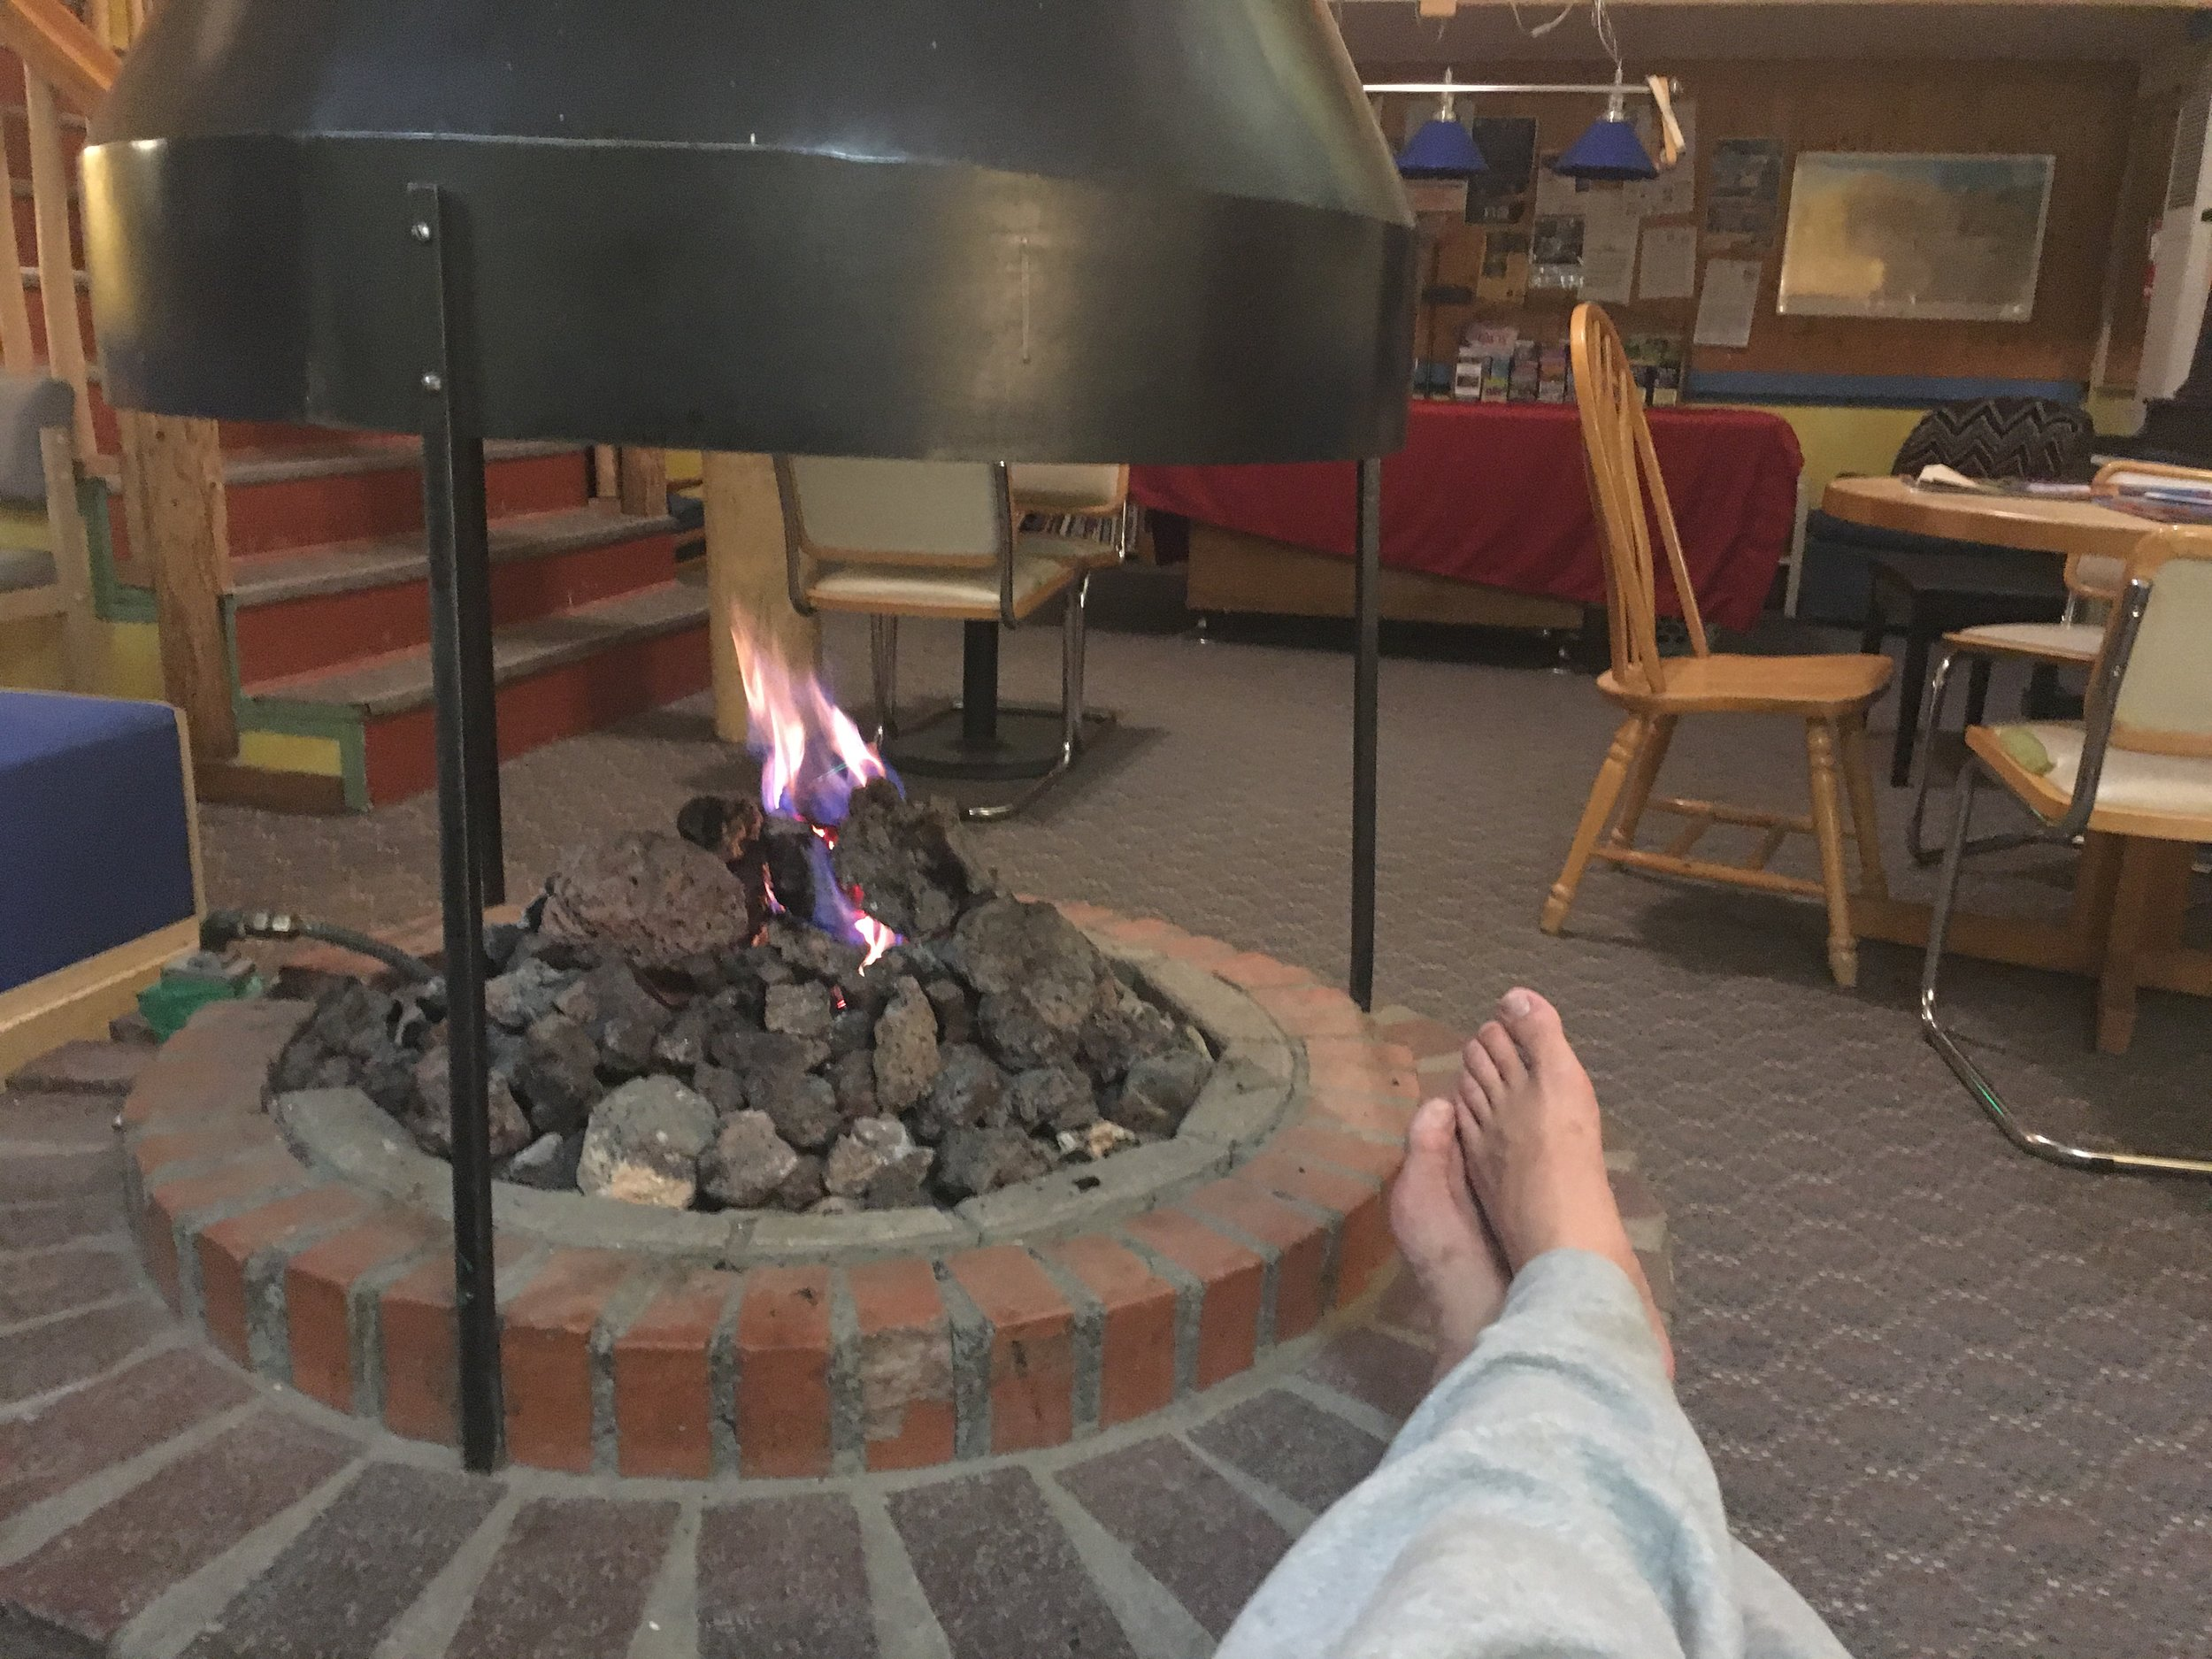 Hostel with a fireplace.  Maybe I'll stay an extra day or two.